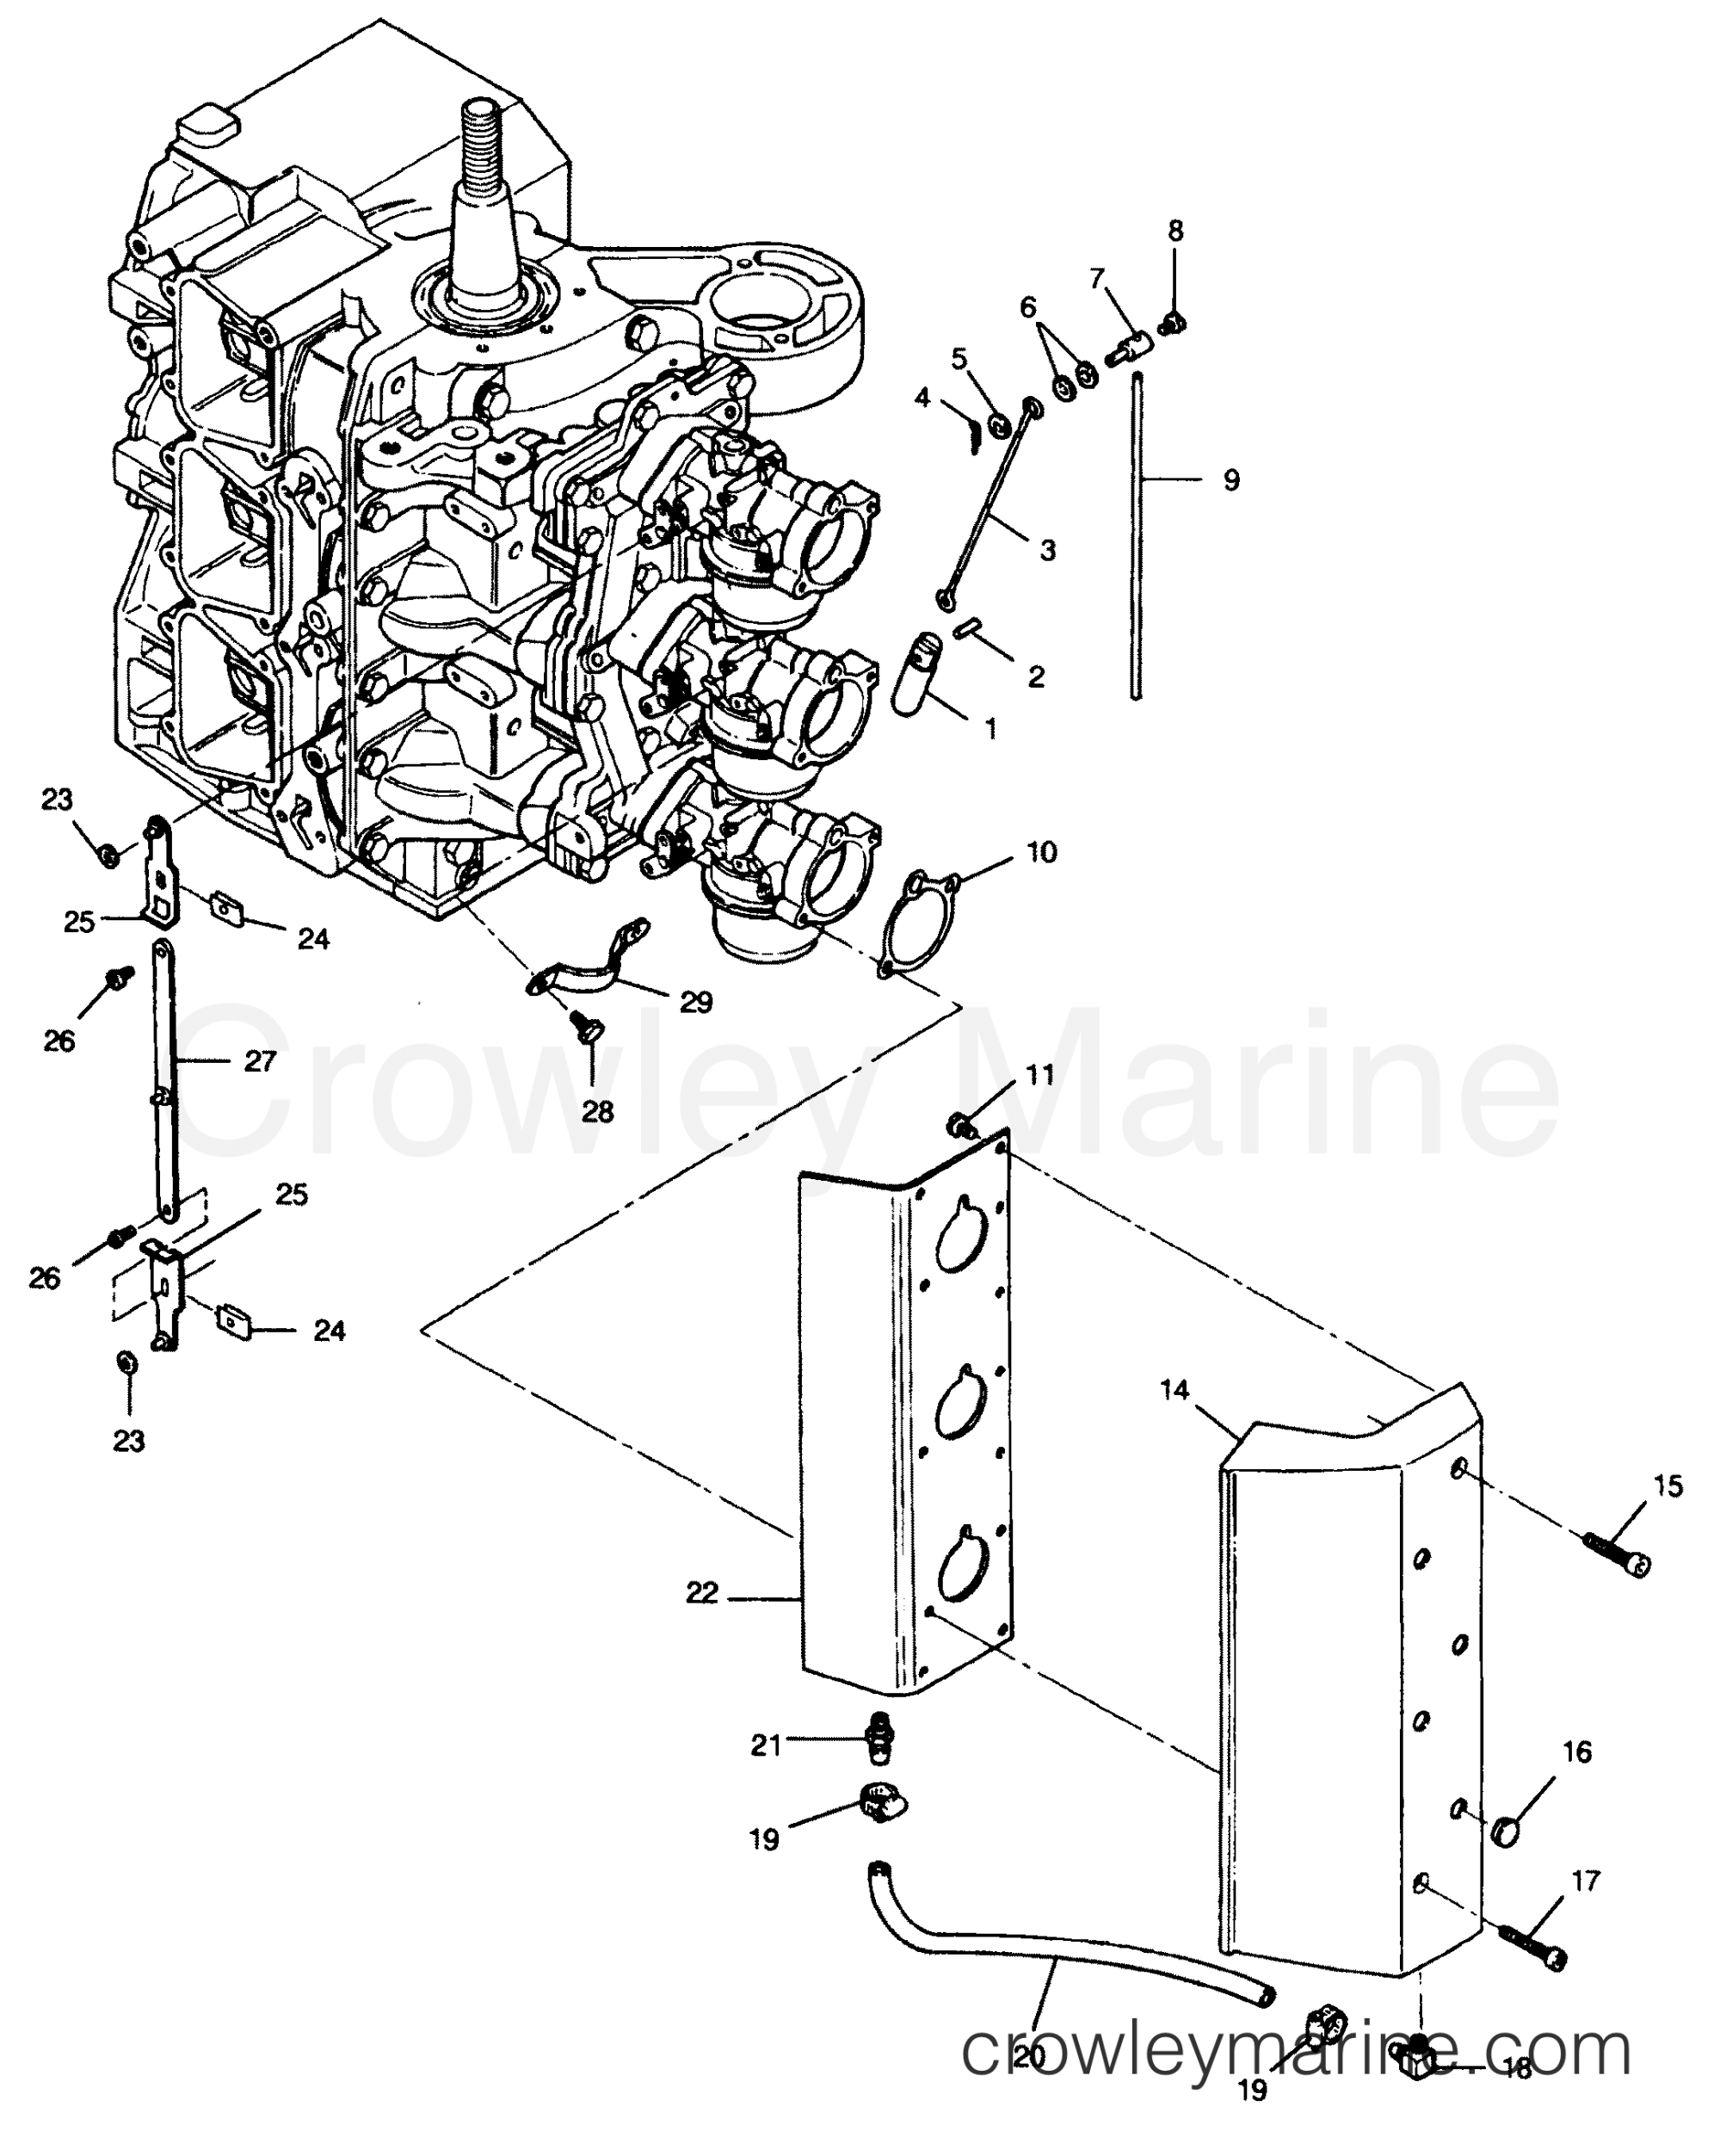 hight resolution of wiring diagram for a 1995 mercury force 40 hp mercury trim switch wiring diagram mercury 500